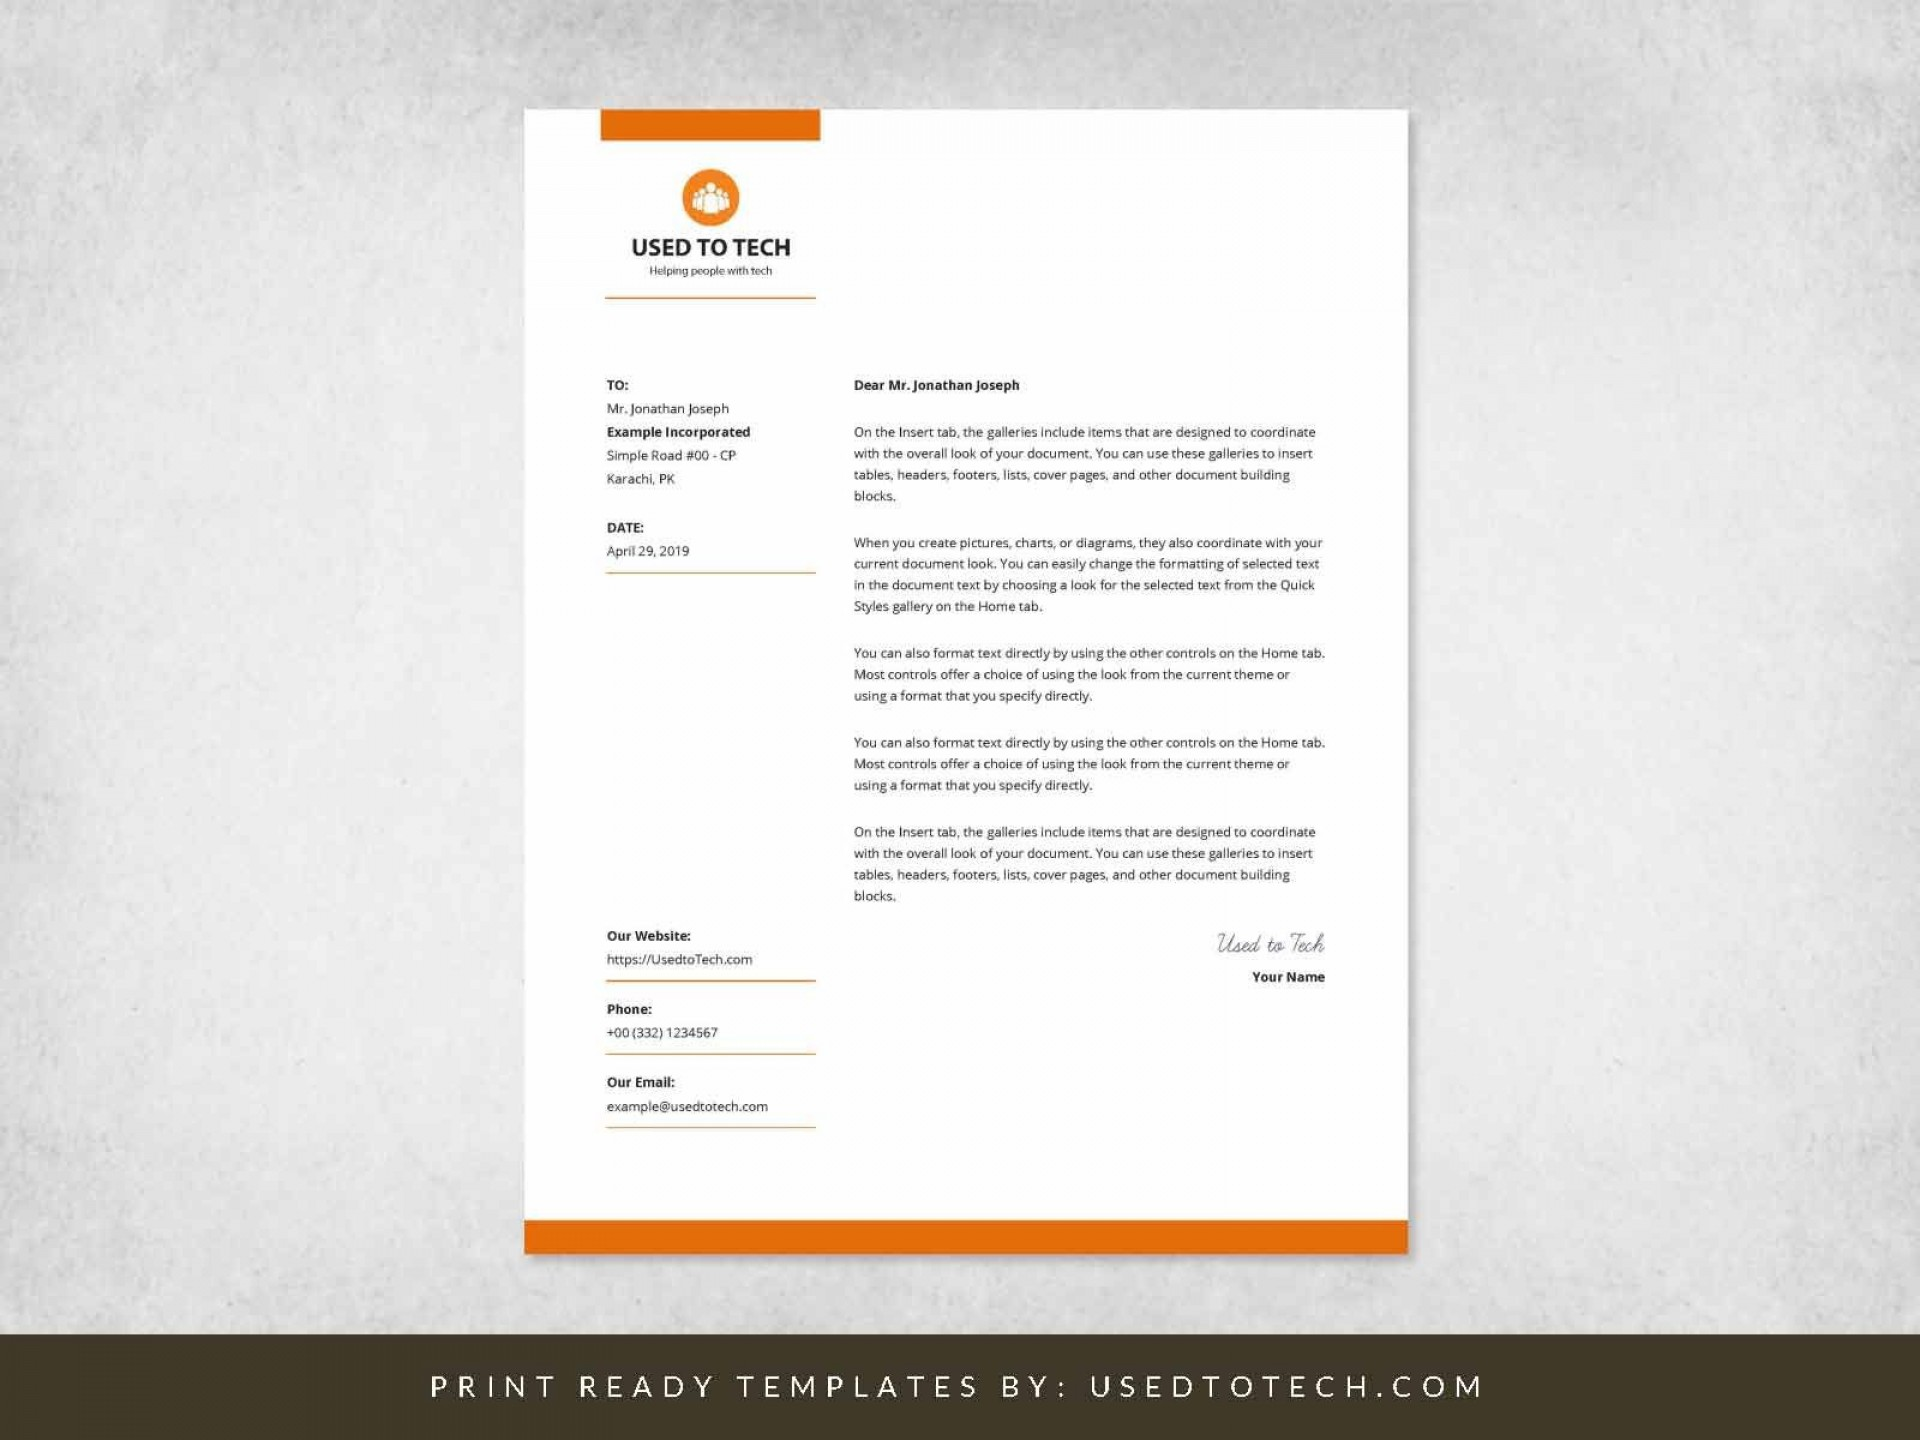 000 Stunning Letterhead Example Free Download Inspiration  Advocate Format Hospital In Word Pdf1920